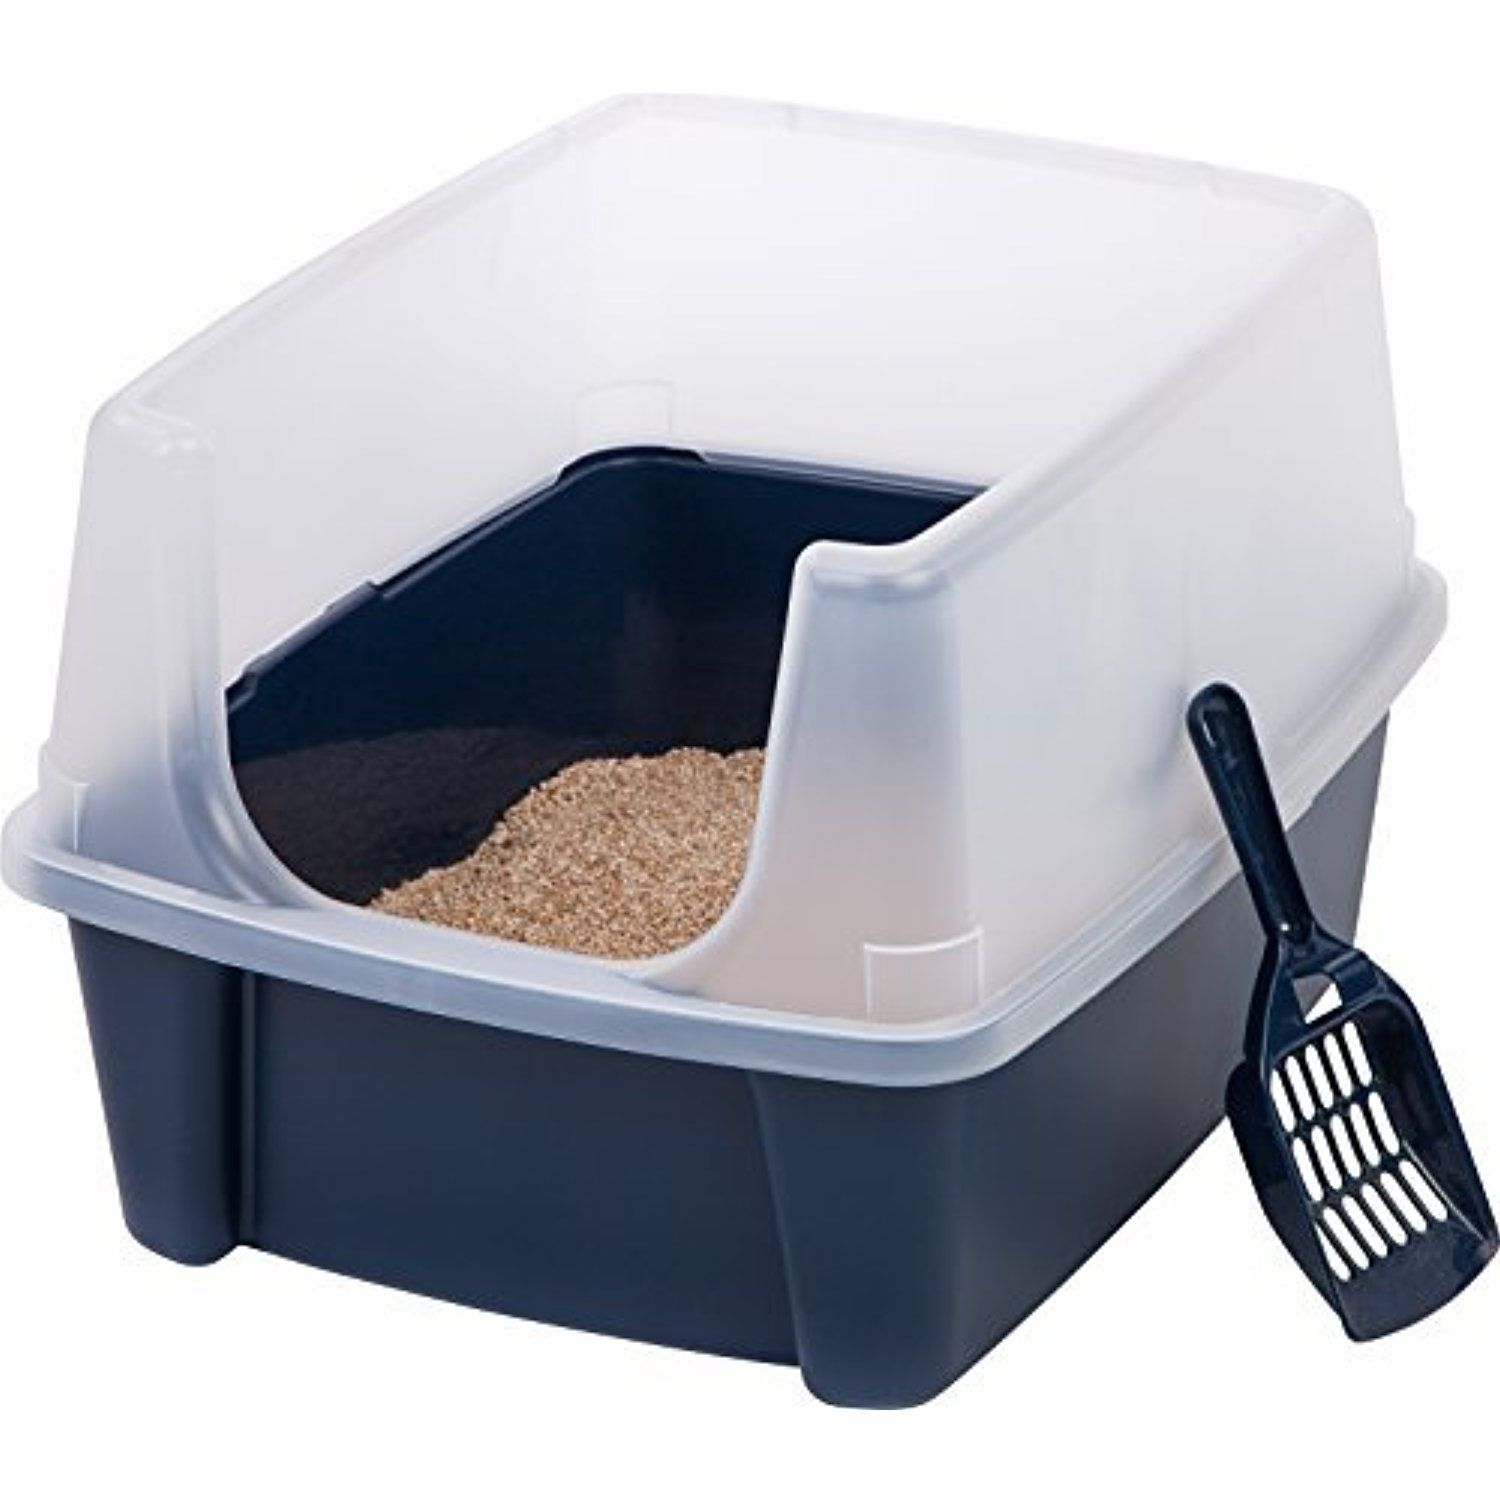 Open Top Cats Litter Box with Shield and Scoop Tidy on the